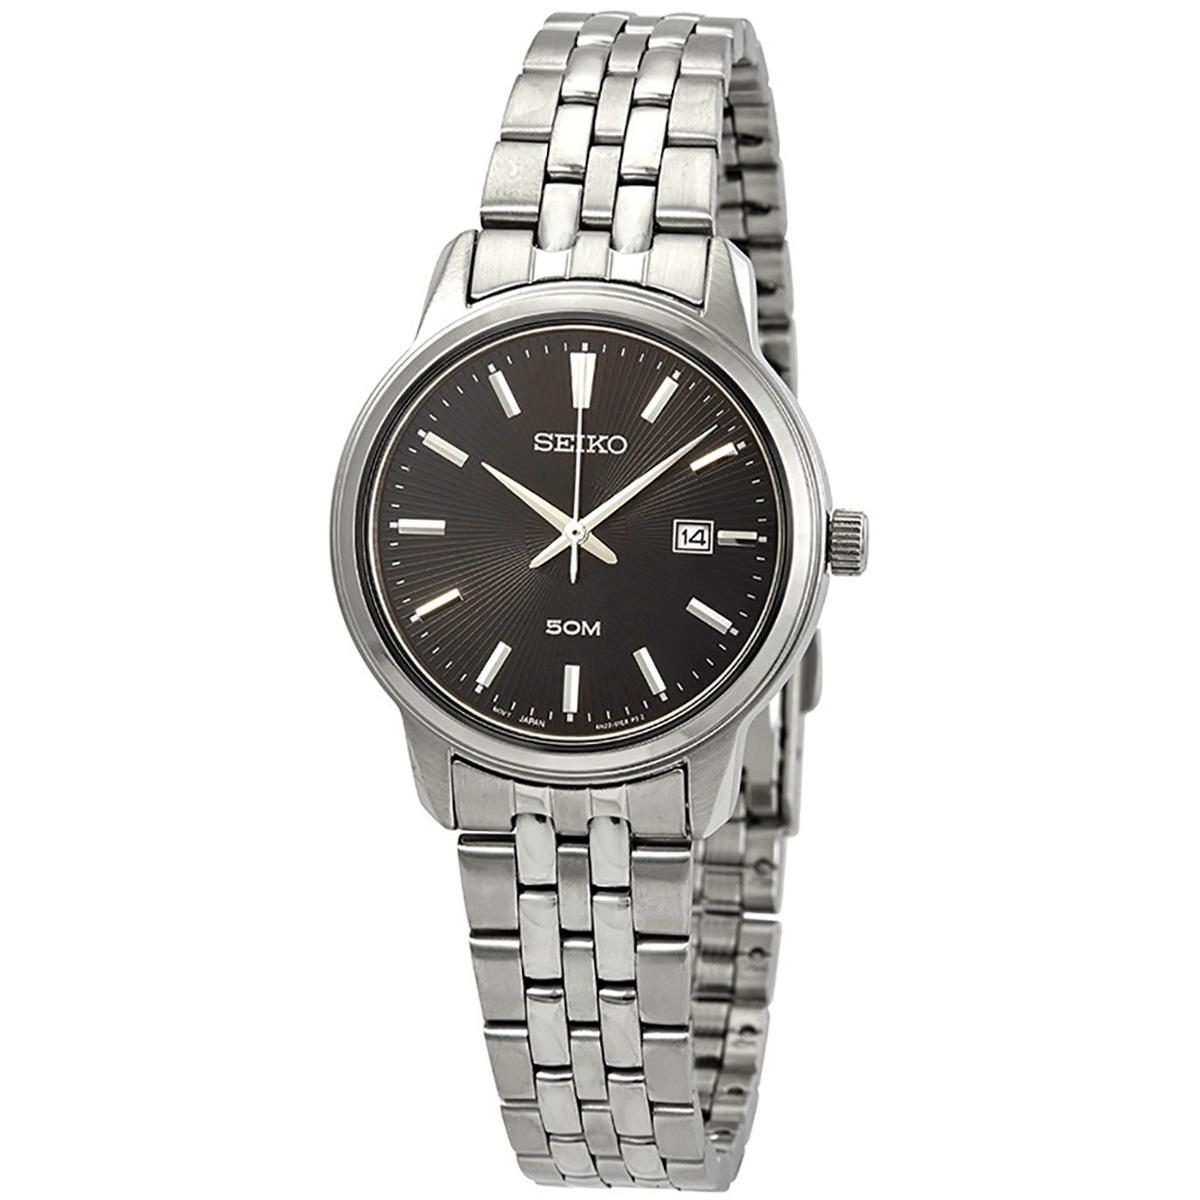 Seiko Watches Price In Malaysia Best Lazada Two Tone Analog Watch Original Brand New Neo Classic Silver Stainless Steel Case Bracelet Ladies Sur663p1